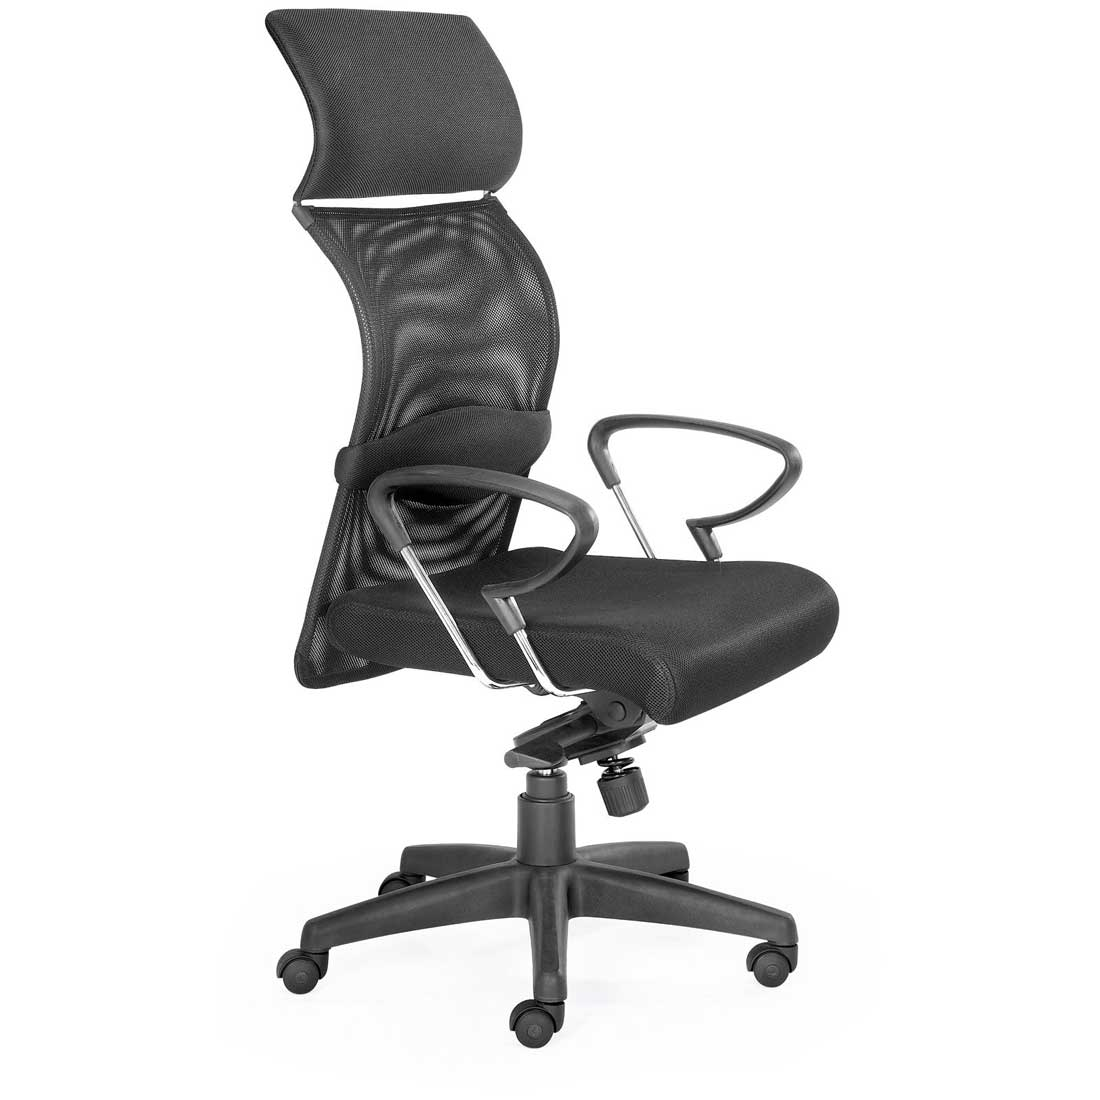 Ergonomic Chairs Ergonomic Desks Ergonomic Keyboards Ergonomic